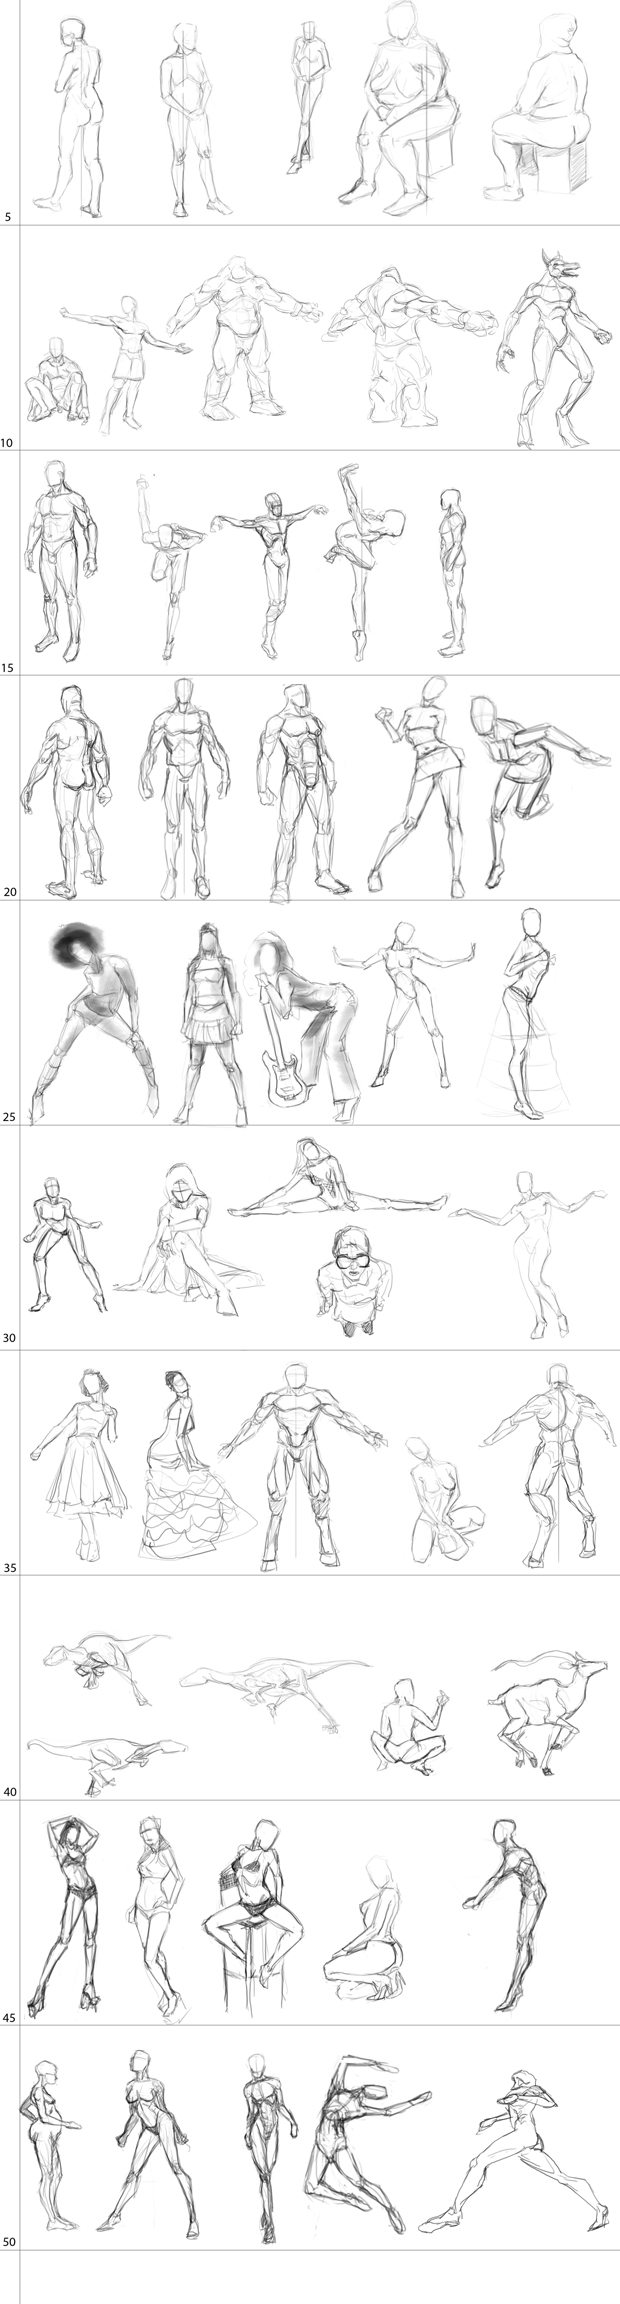 "Spartan Camp #36 - 50 gestures + Optional Study of ""Body Building"""